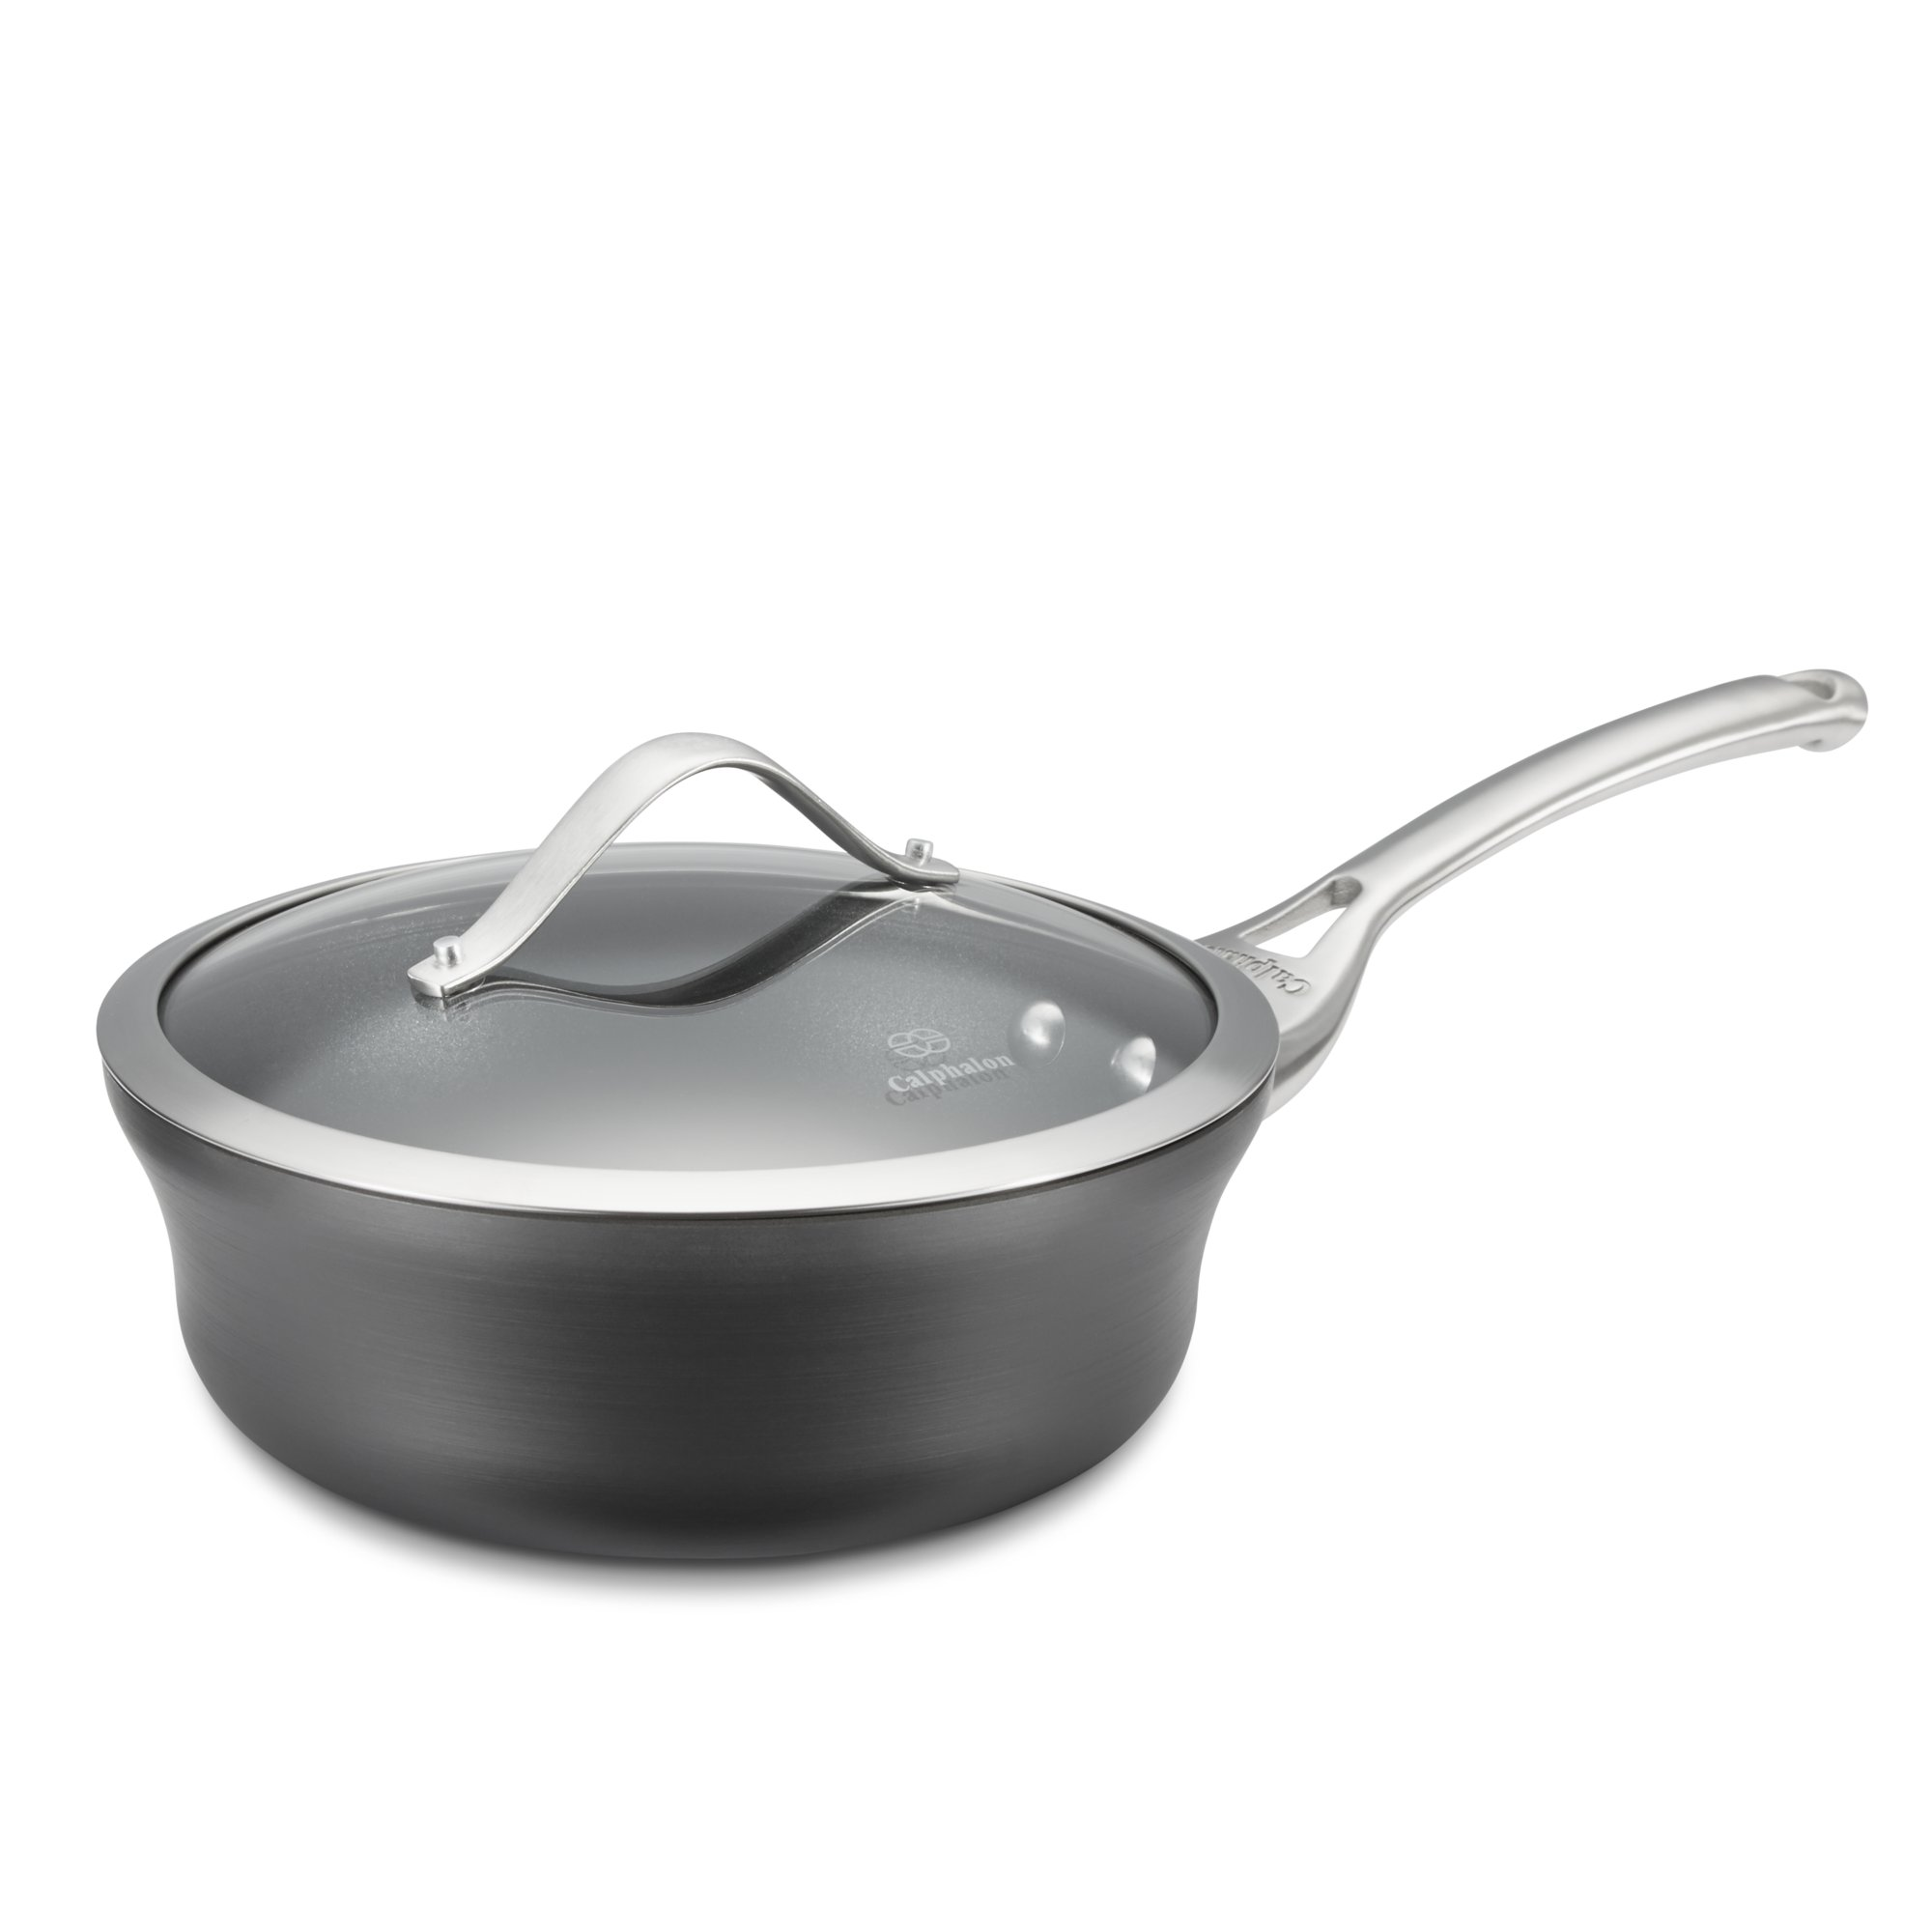 Calphalon Contemporary Nonstick 2.5-qt. Shallow Sauce Pan with Cover